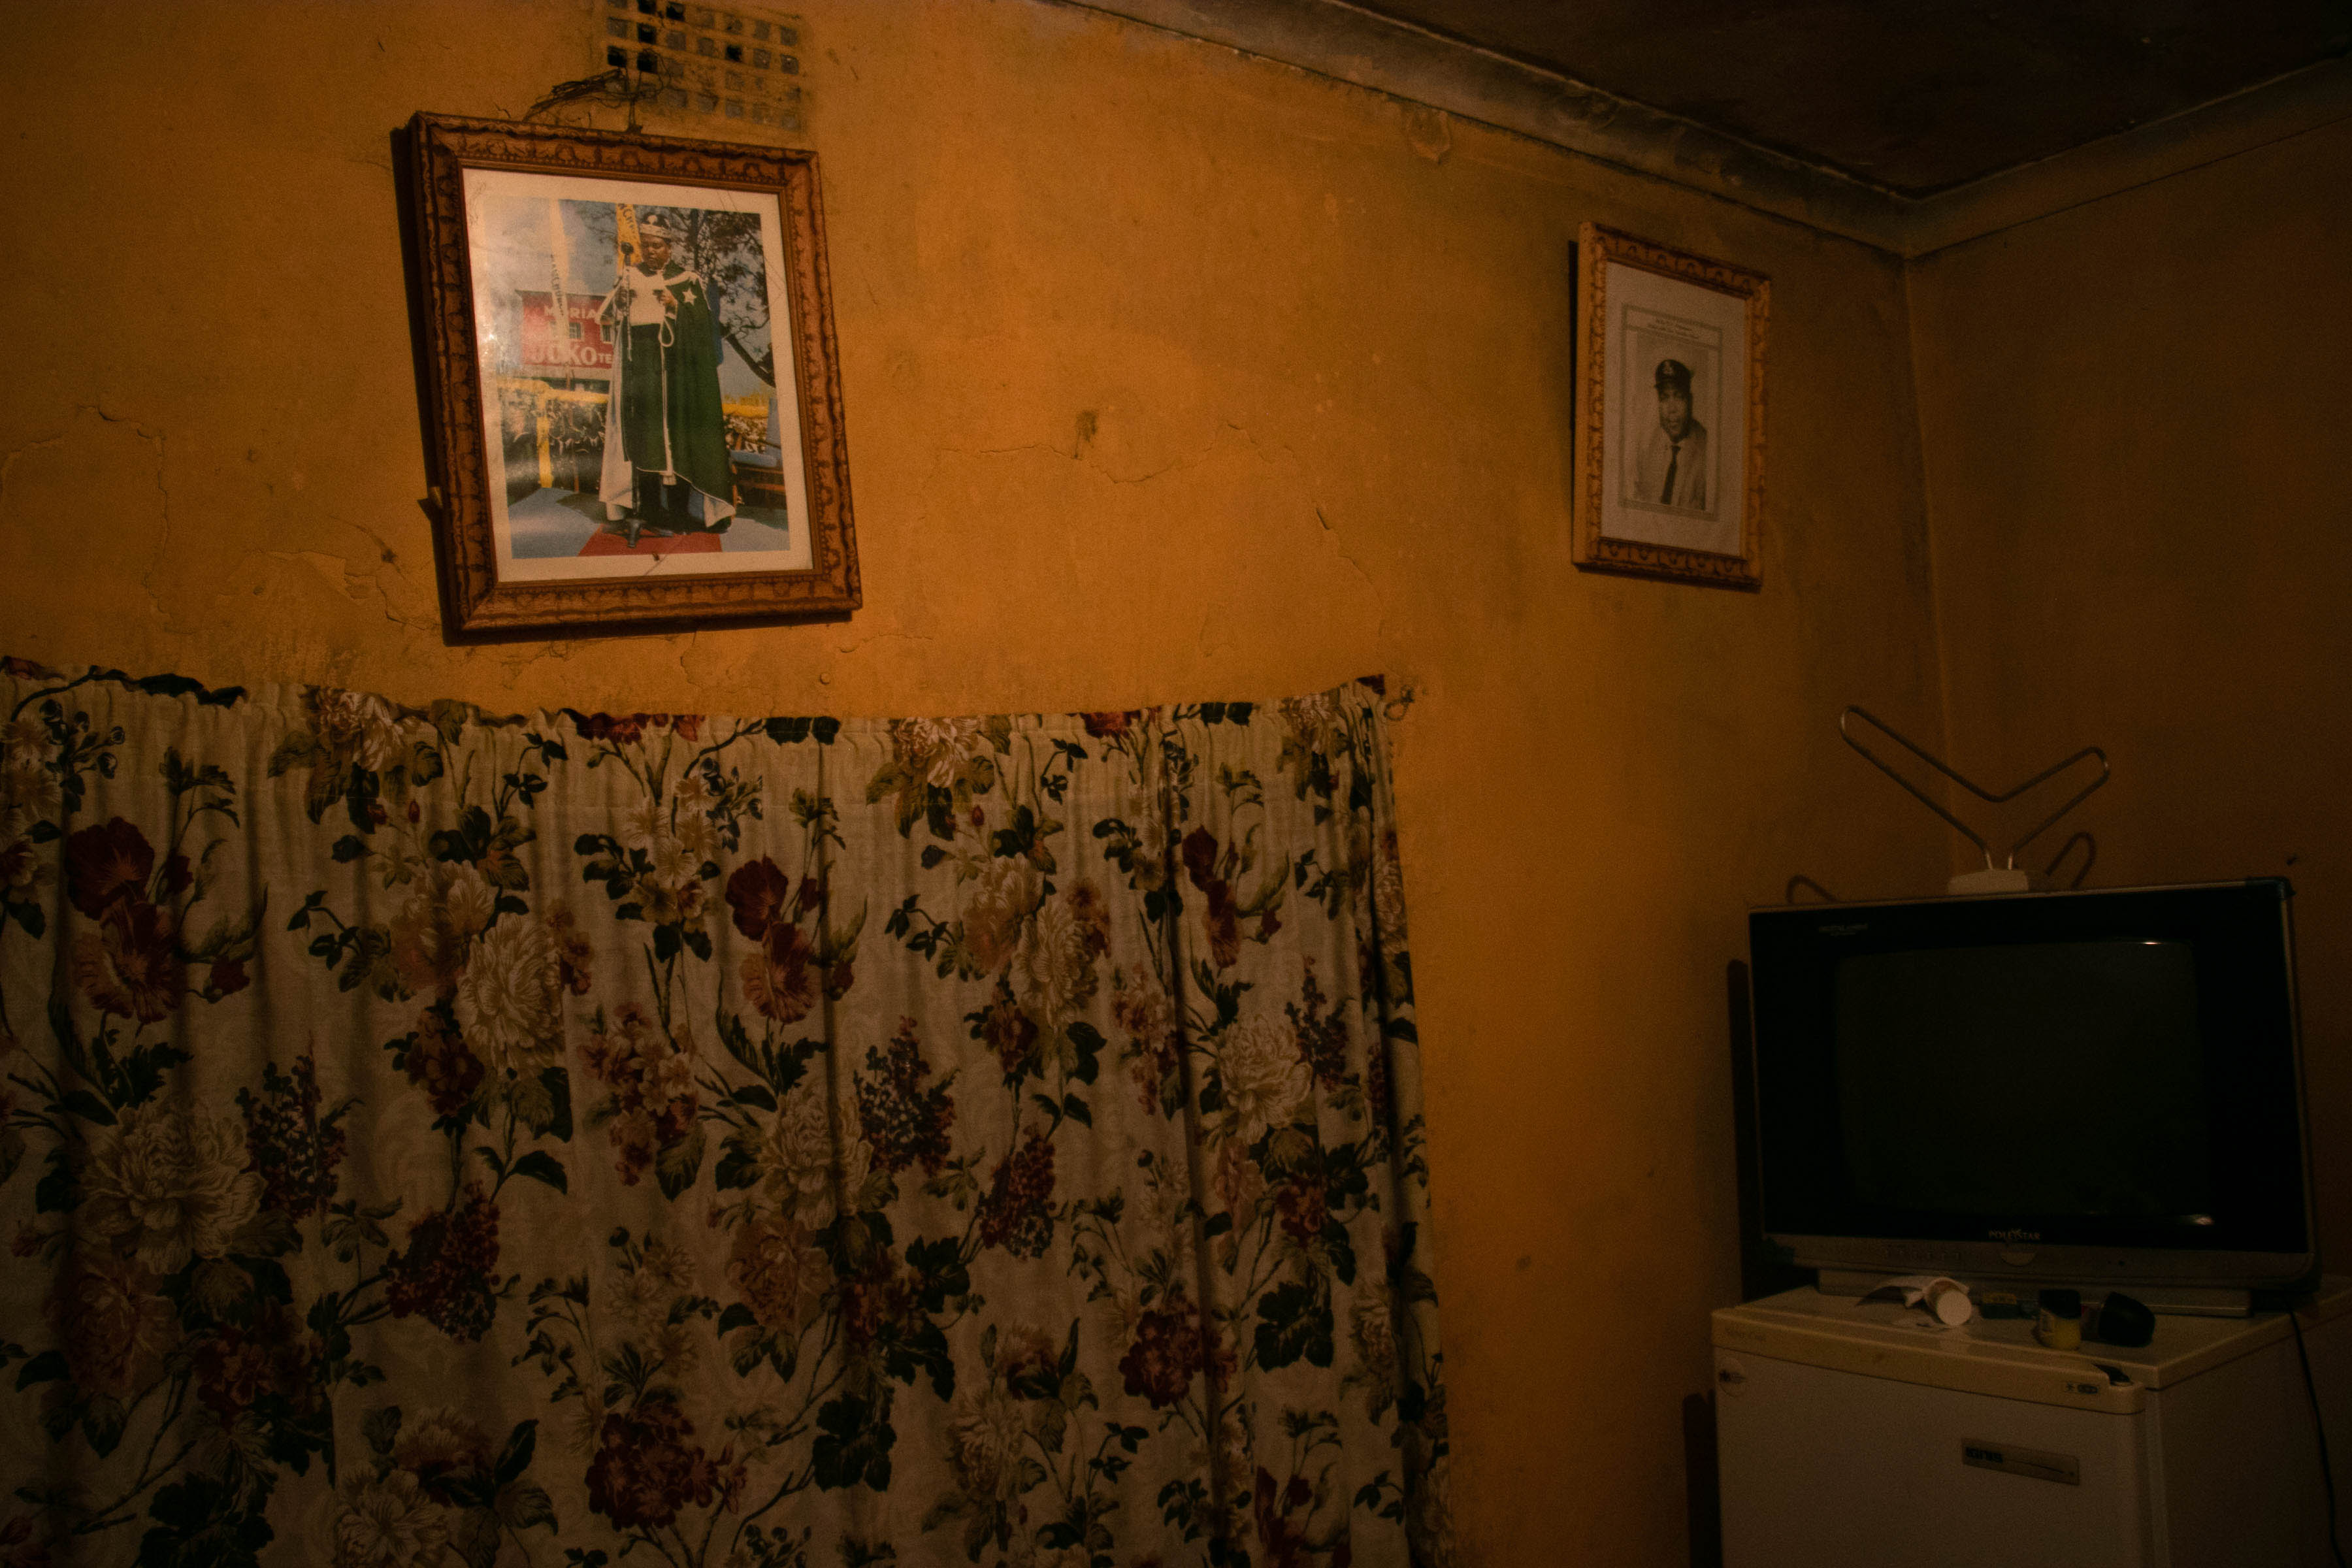 2 October 2019: Edmond Patrick Ndlovu's home is sparsely furnished, with pictures of former Zion Christian Church leader Edward Lekganyane hanging on the walls.